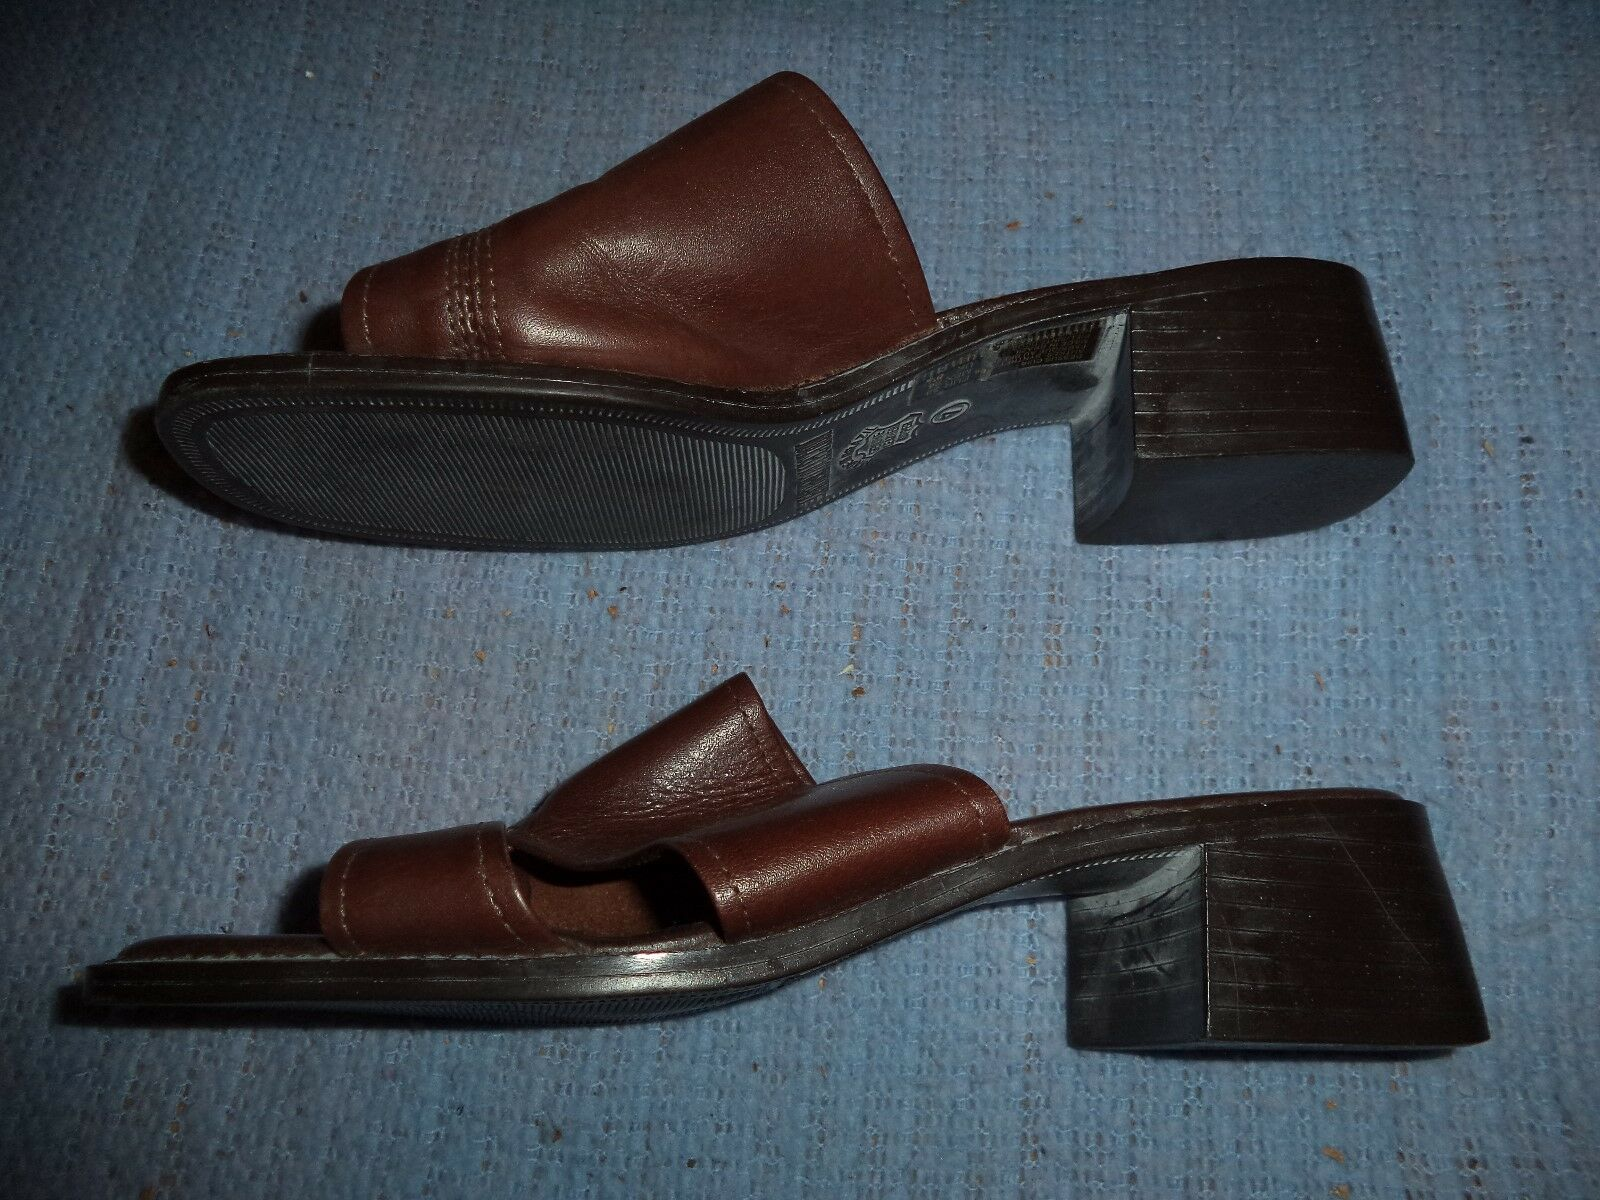 THE COLLECTION LEATHER COLLECTION THE SANDALS WOMEN'S SIZE 7 bbc4bf